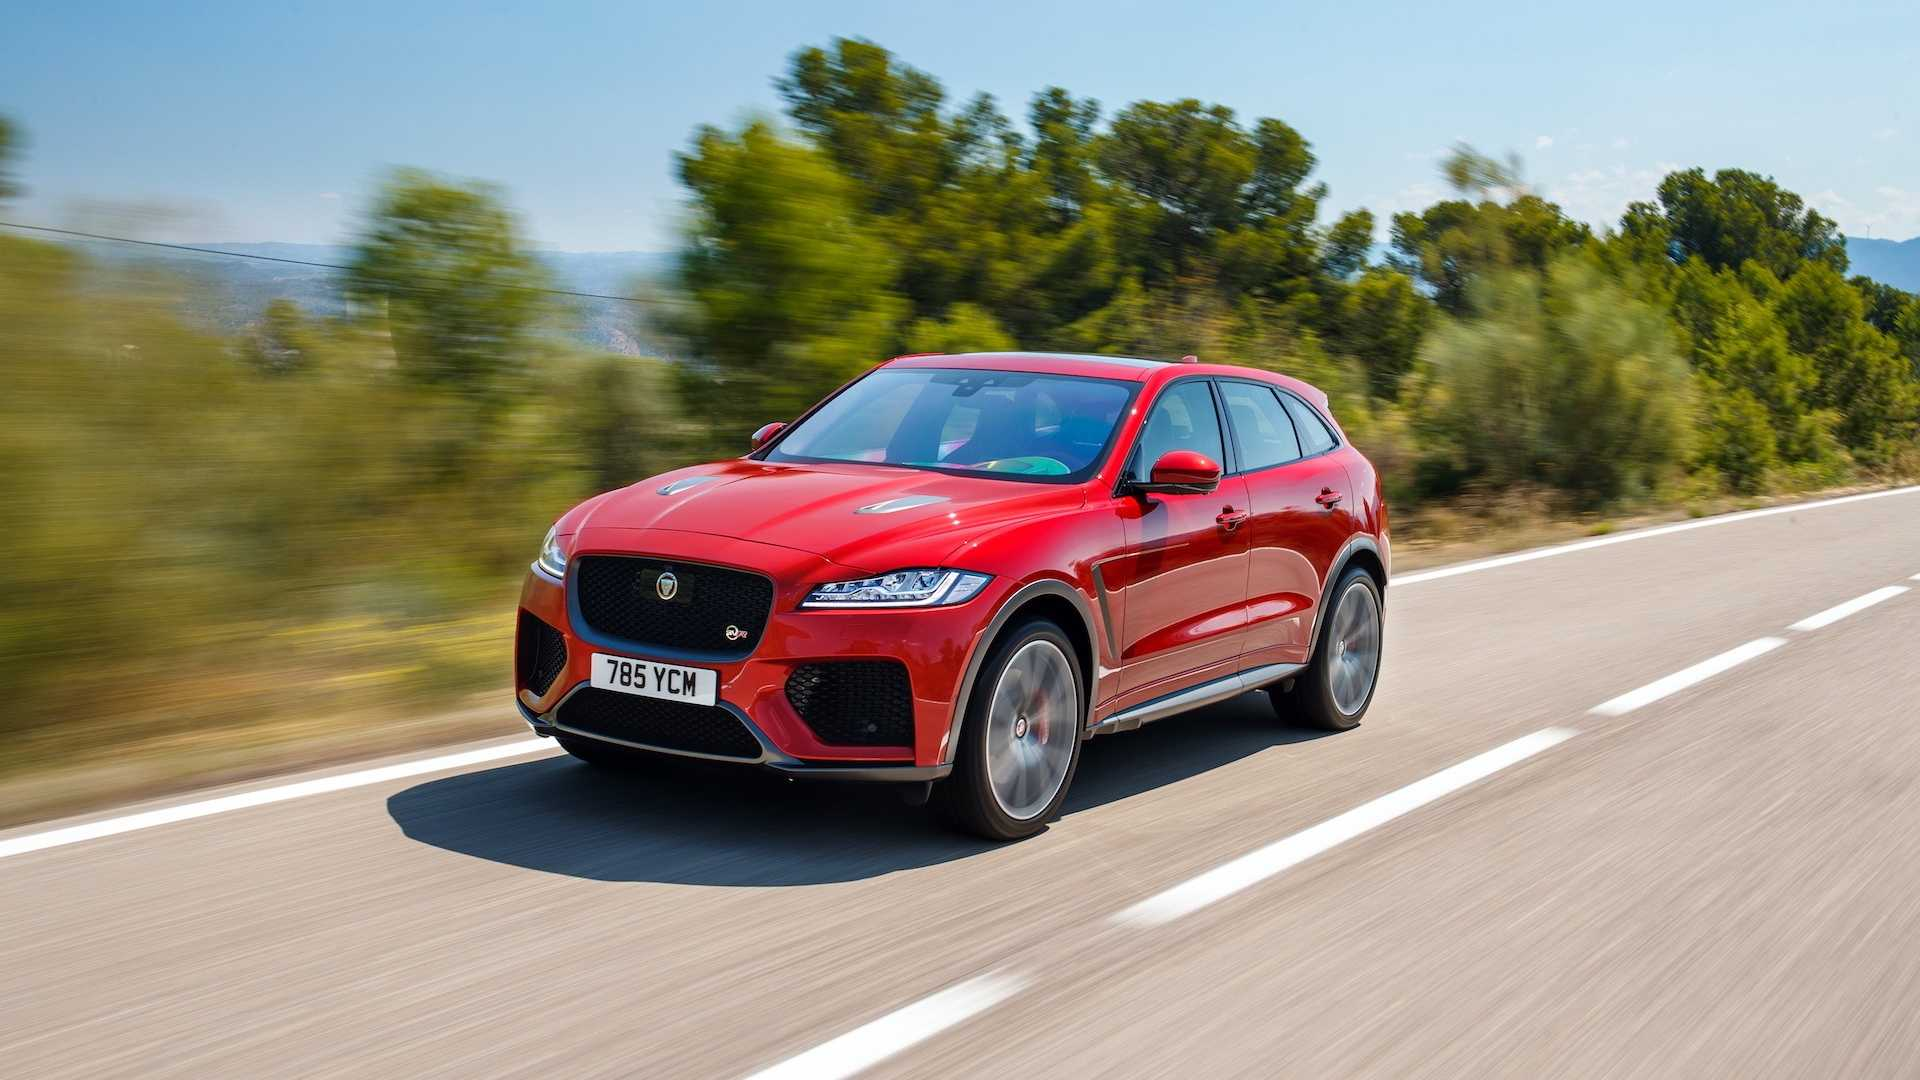 2019 Jaguar F-Pace SVR (Color: Firenze Red) Front Three-Quarter Wallpapers (5)